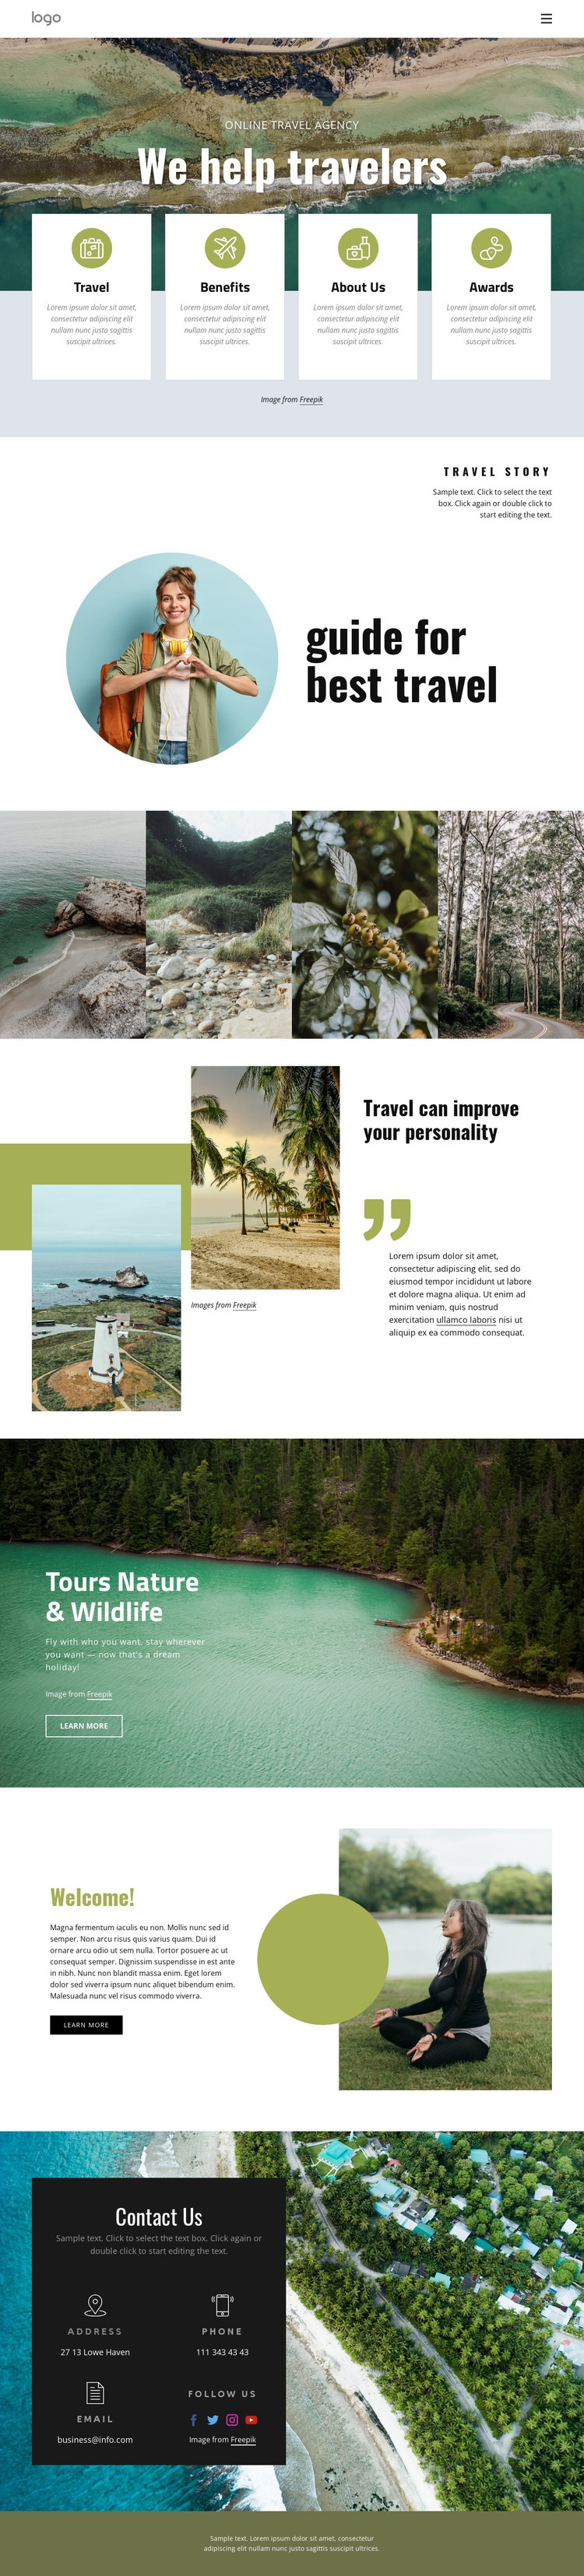 We help manage your trip Homepage Design